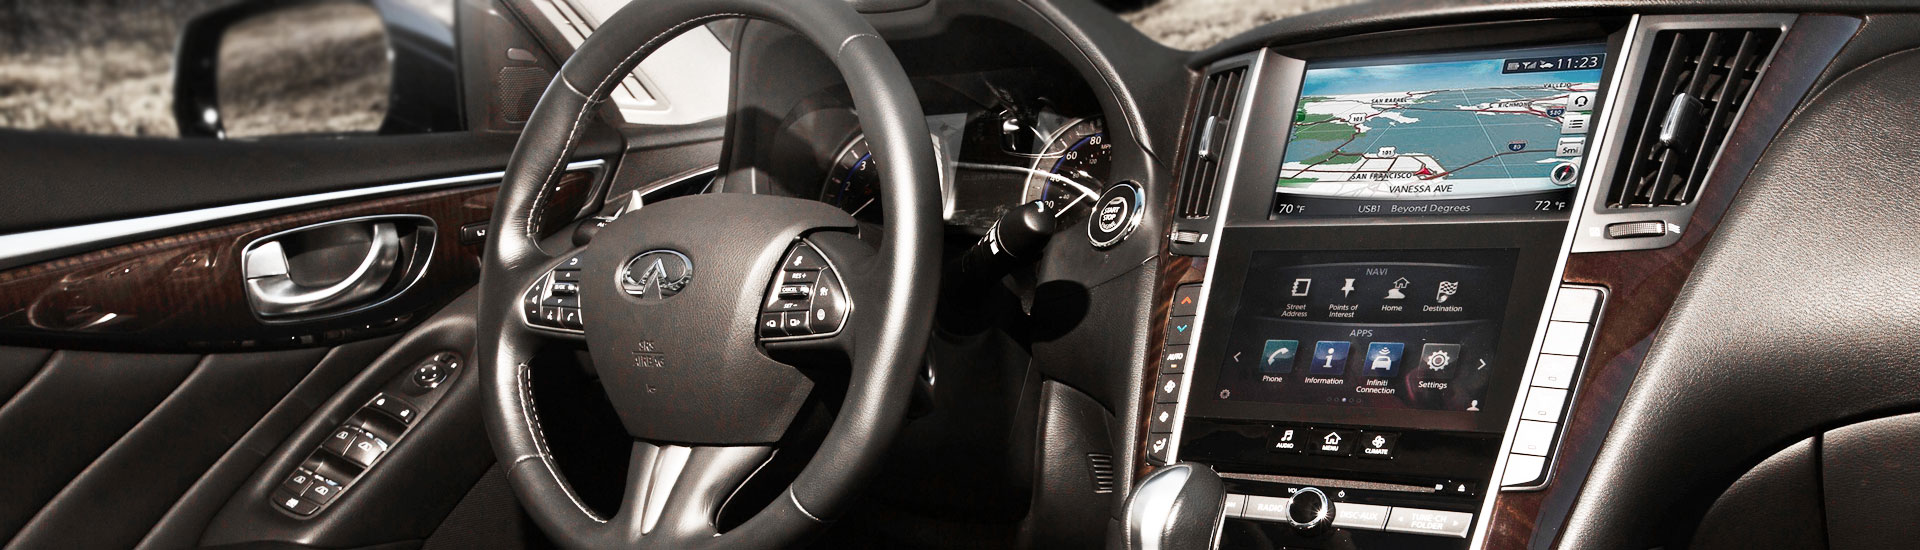 Infiniti Q50 Custom Dash Kits